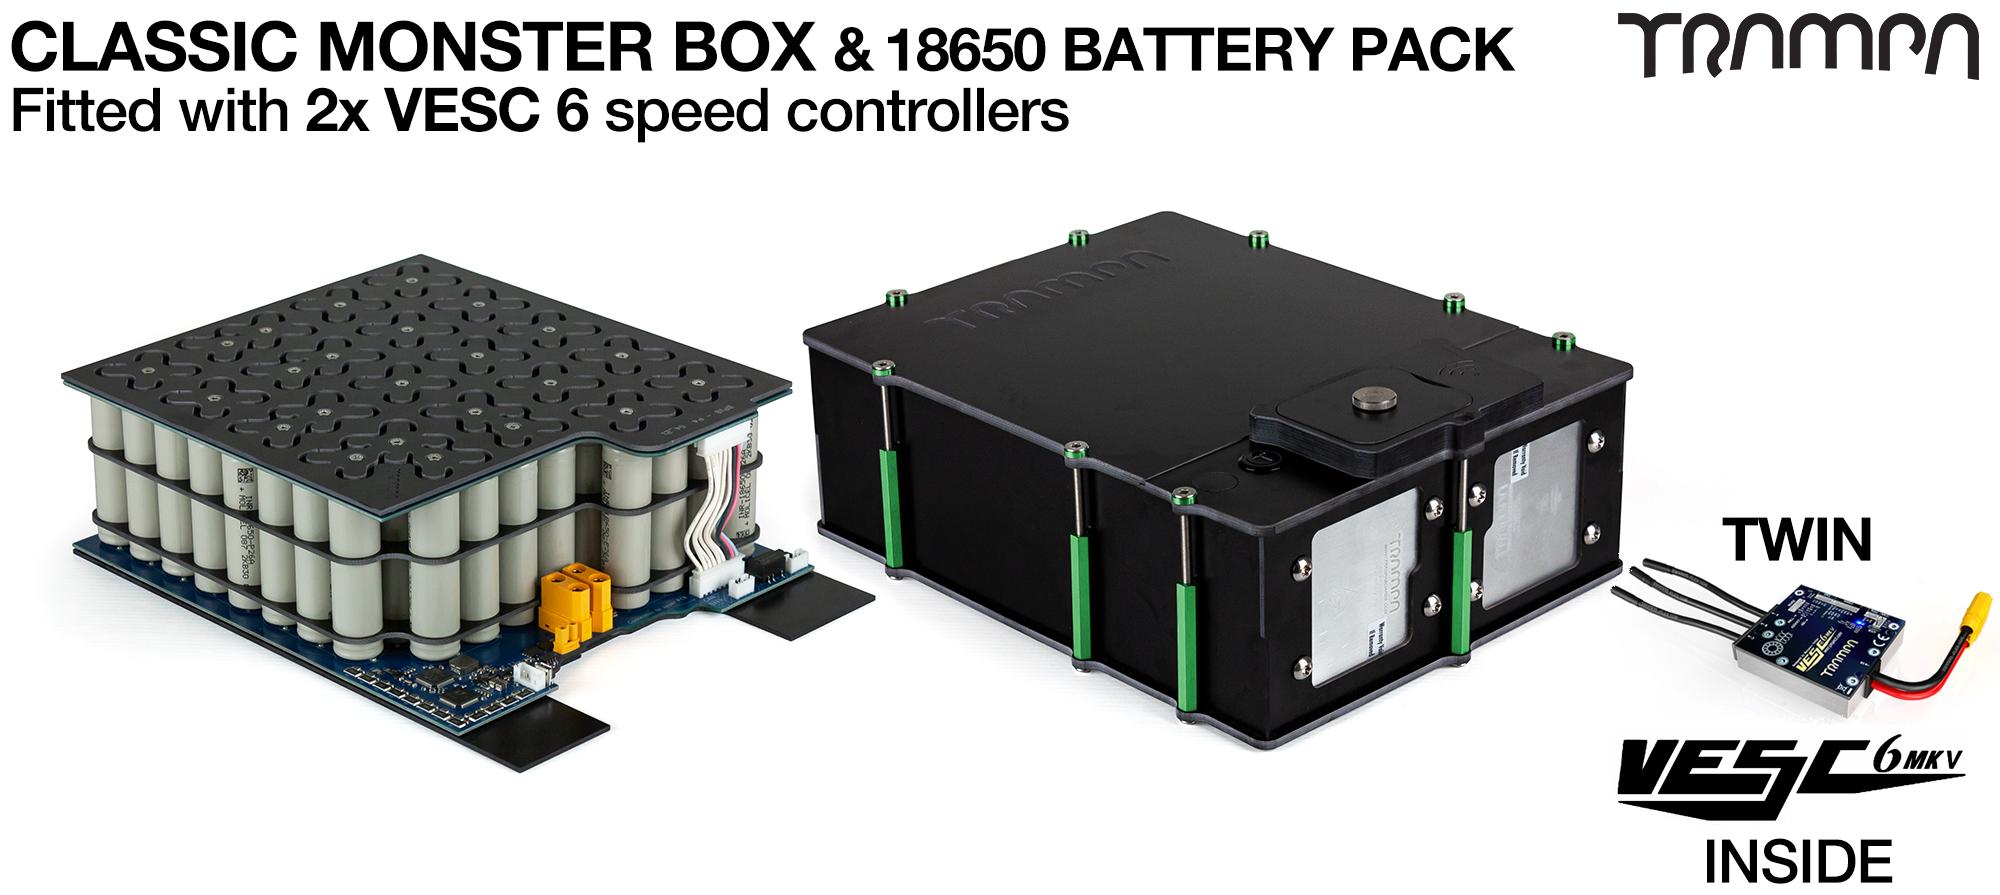 MONSTER Box MkIV - with 18650 PCB Pack, 2x VESC 6 with NRF & 84x 18650 cells 12s7p 21Ah - PCB based Battery Pack with Integrated Battery Management System (BMS) - UK CUSTOMERS ONLY